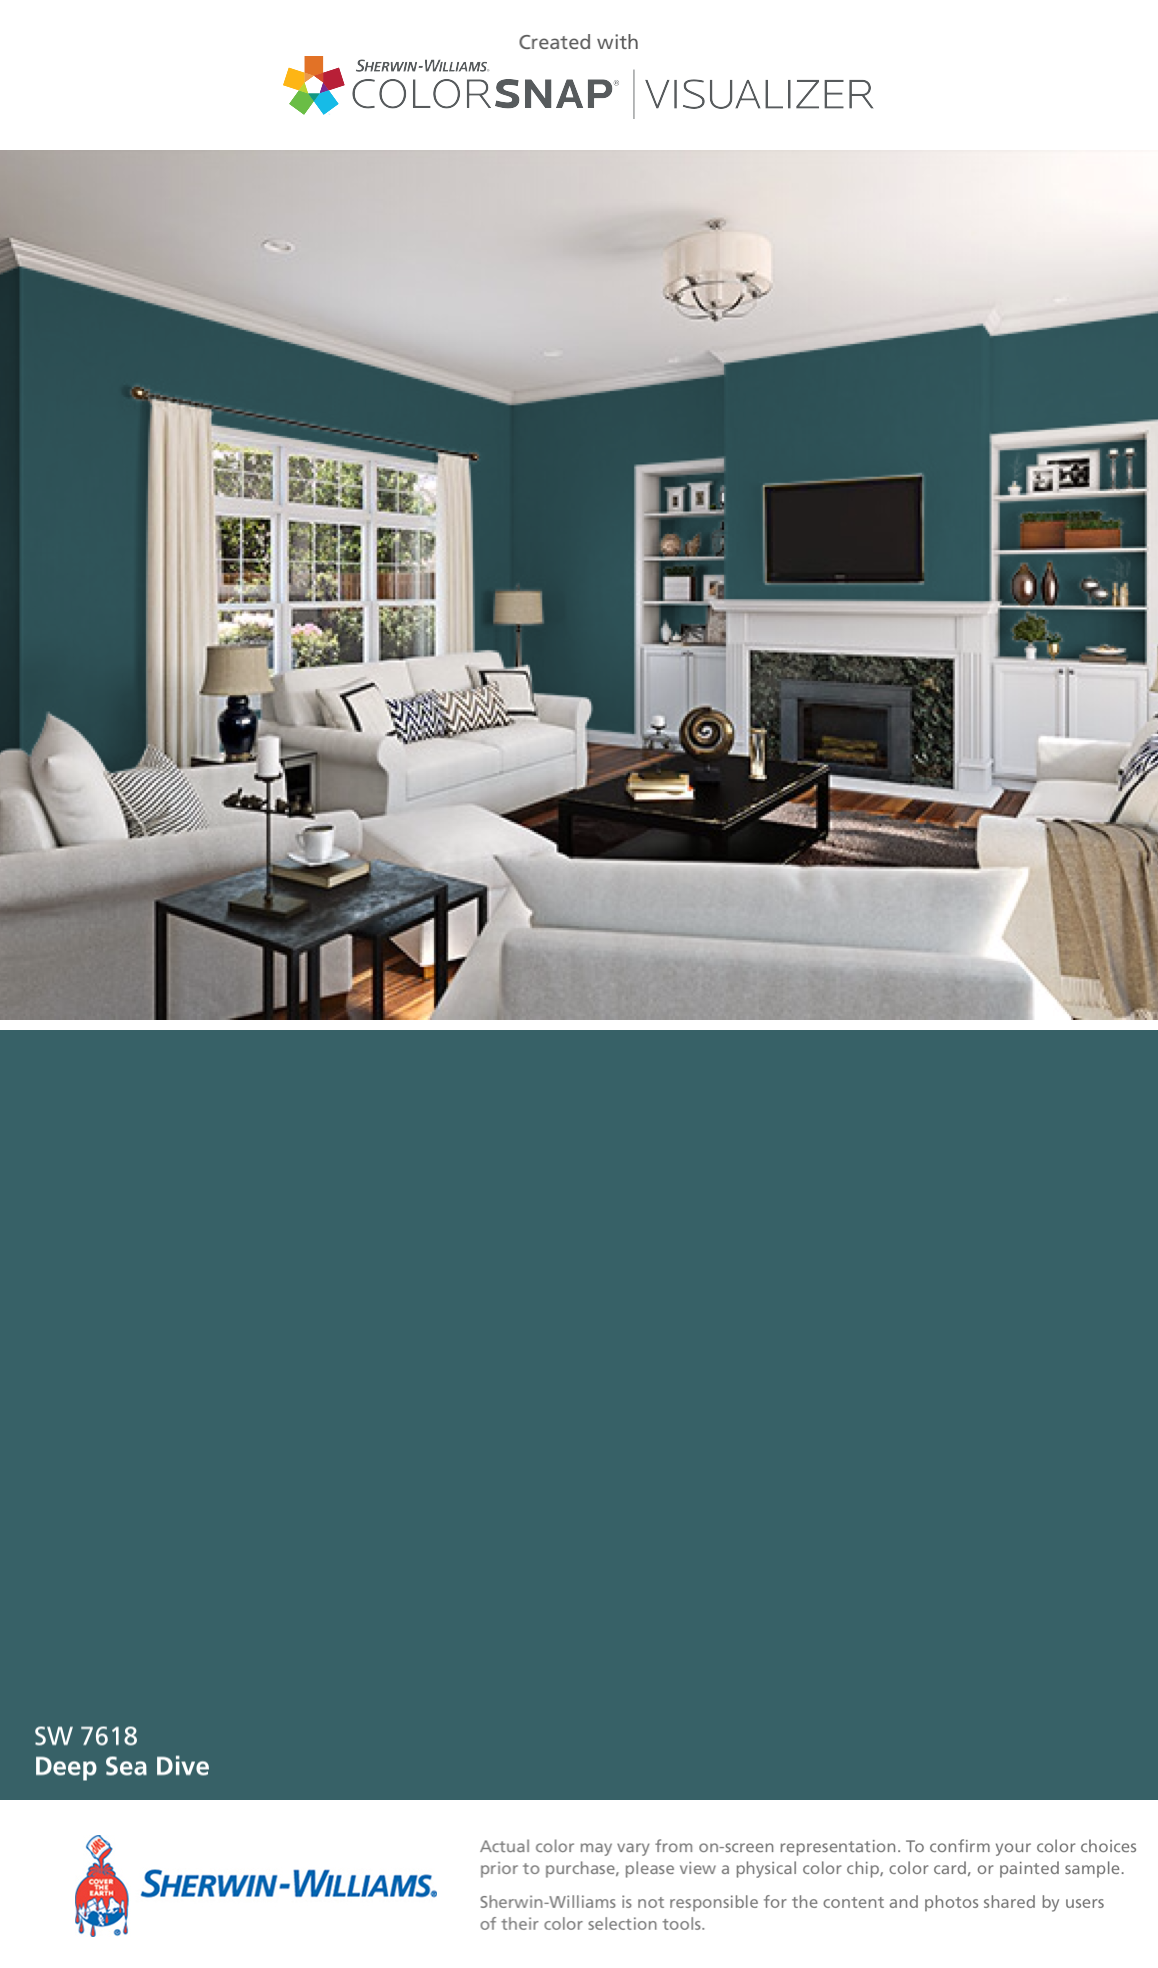 Pick Paint Colors App Style With Sherwin Williams The ColorSnapR Color Matching Uses Your Android Or IPhone Smartphone To Match